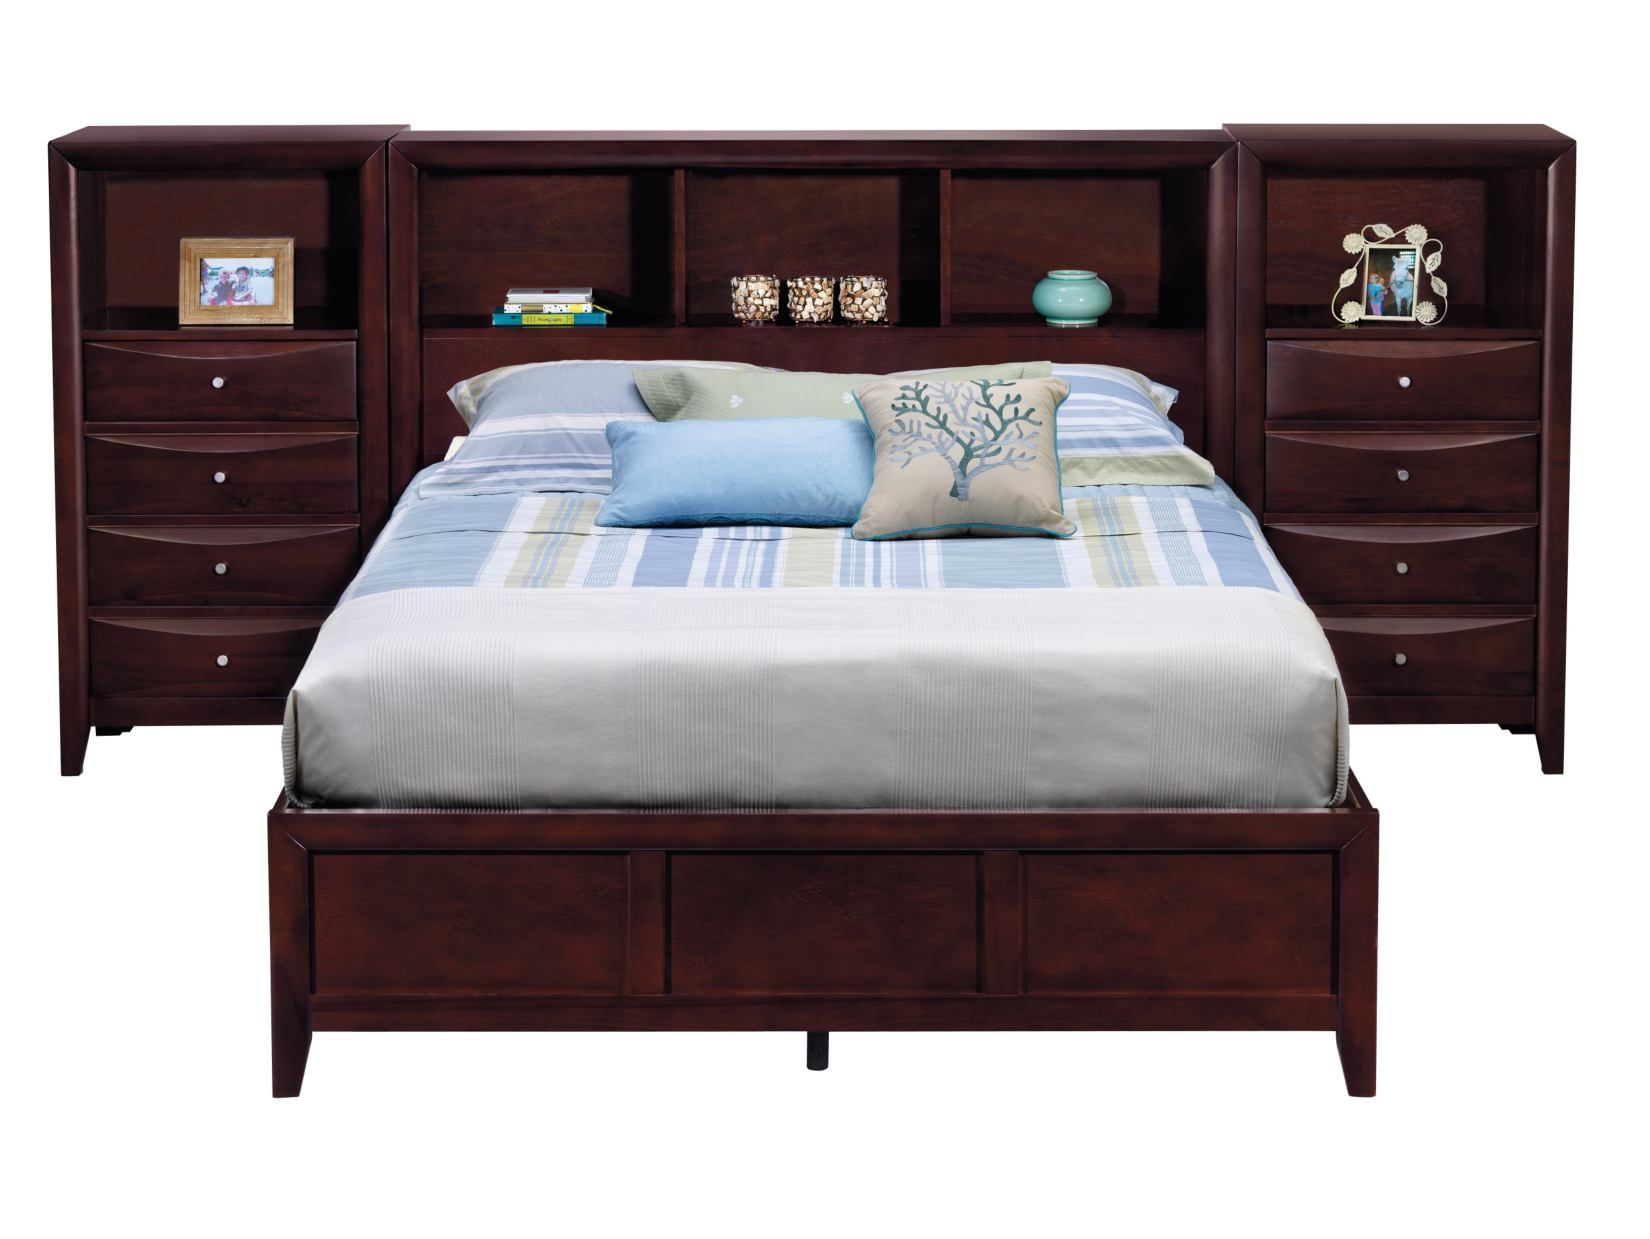 Clarion 5 Pc Wall Bed With Piers